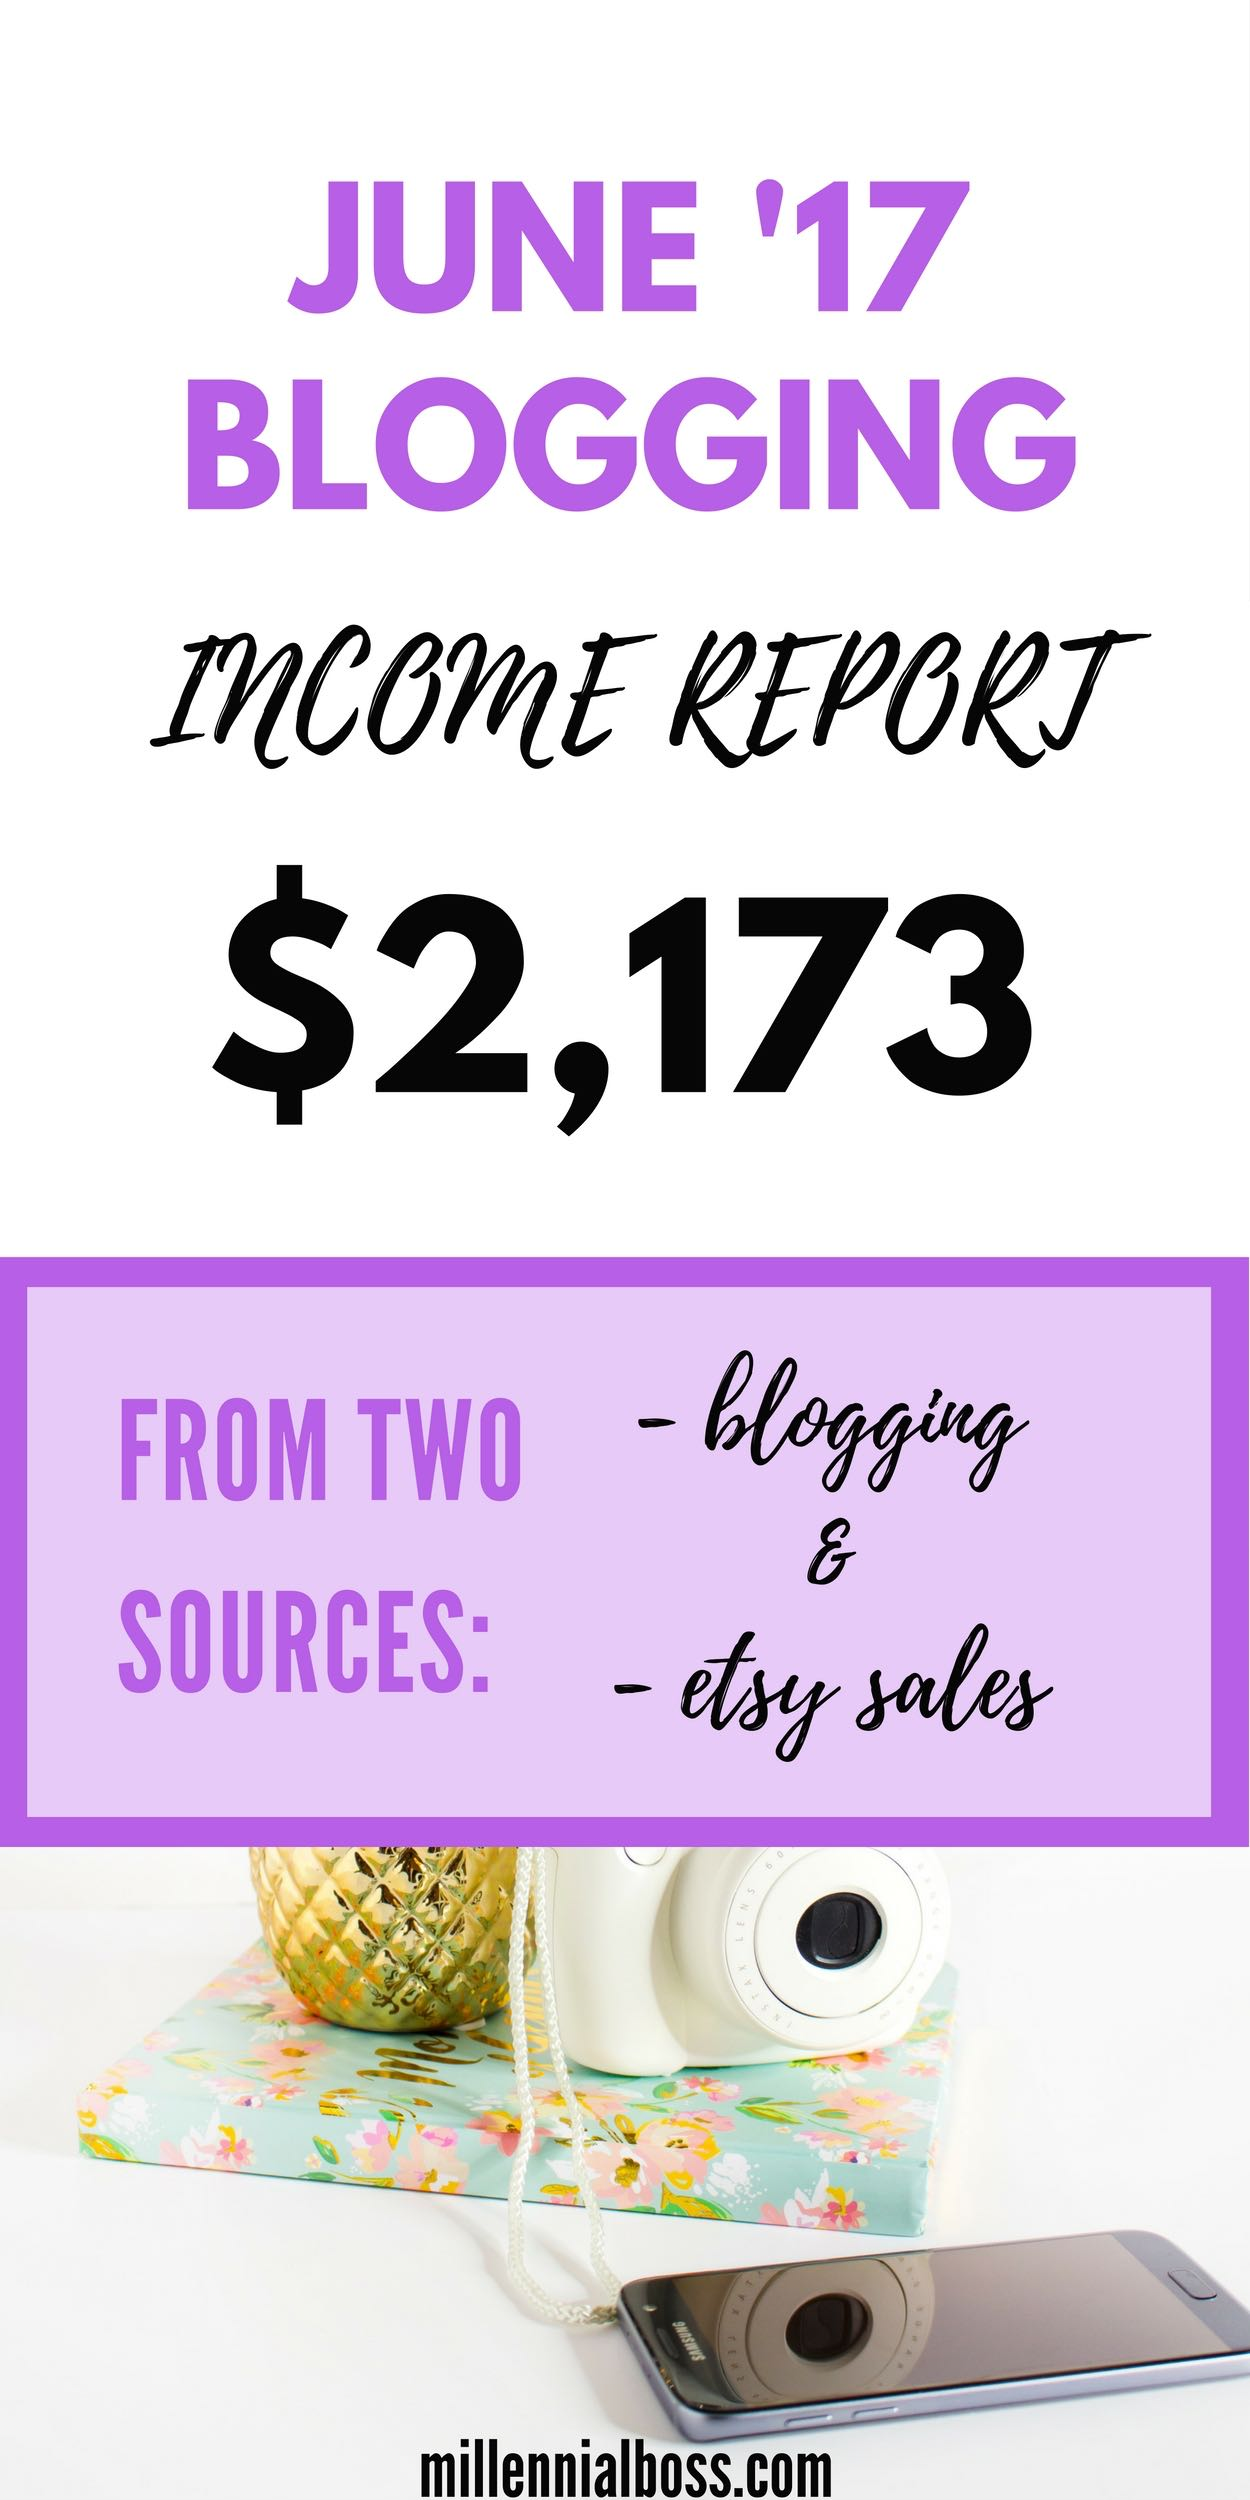 Best blogger income report going - thanks for sharing!